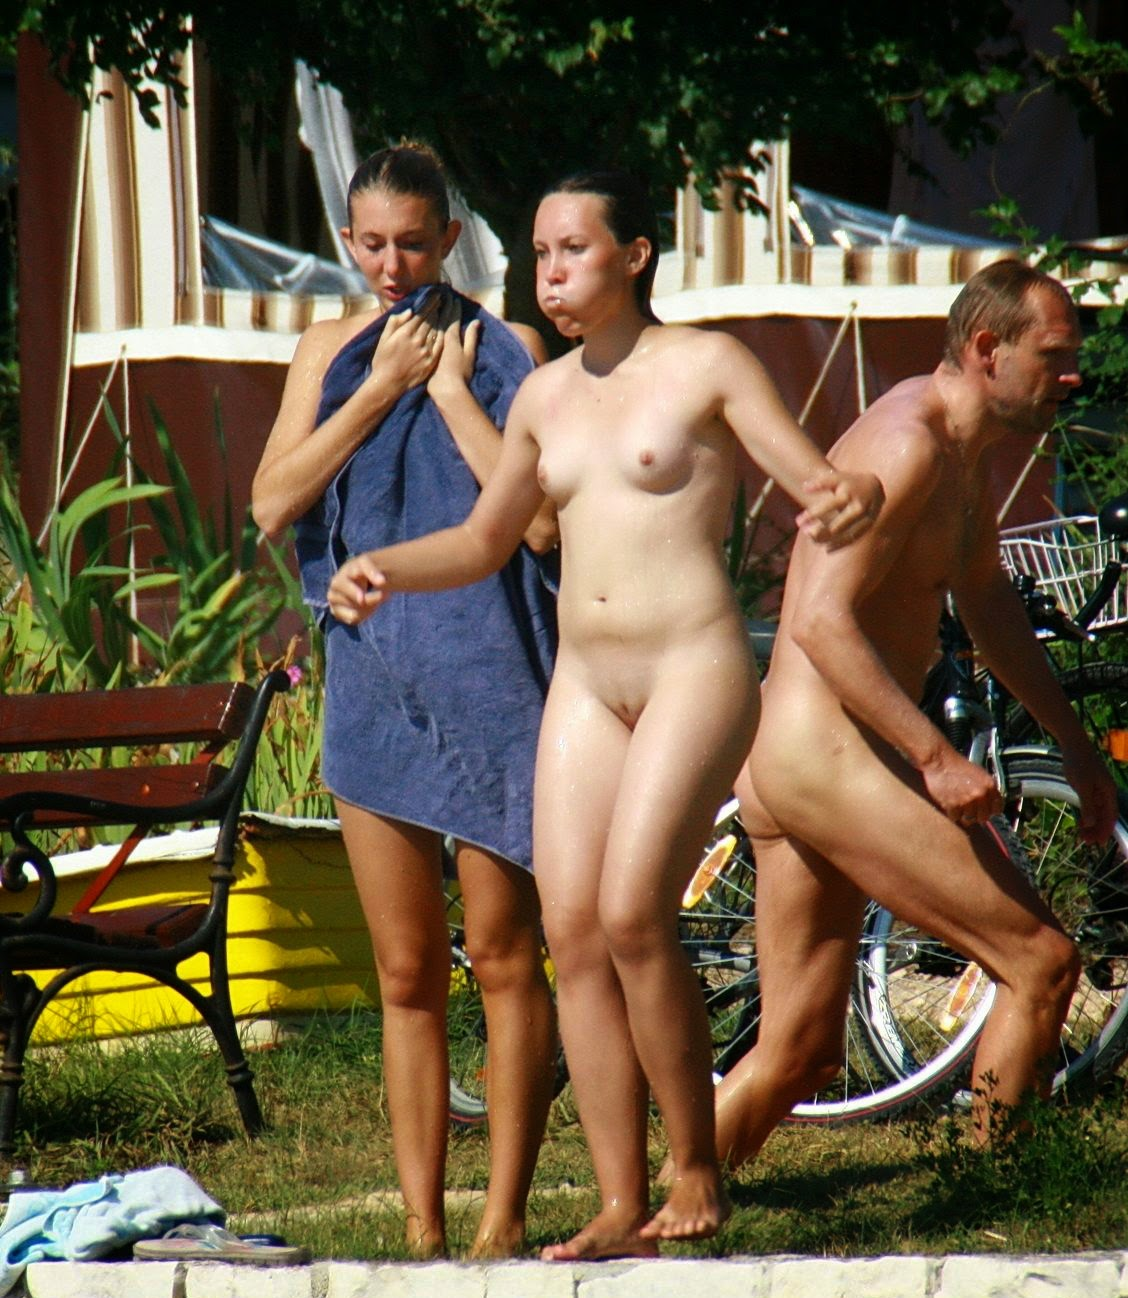 She's machine nackt young nudist family blogspot nudist family thanks